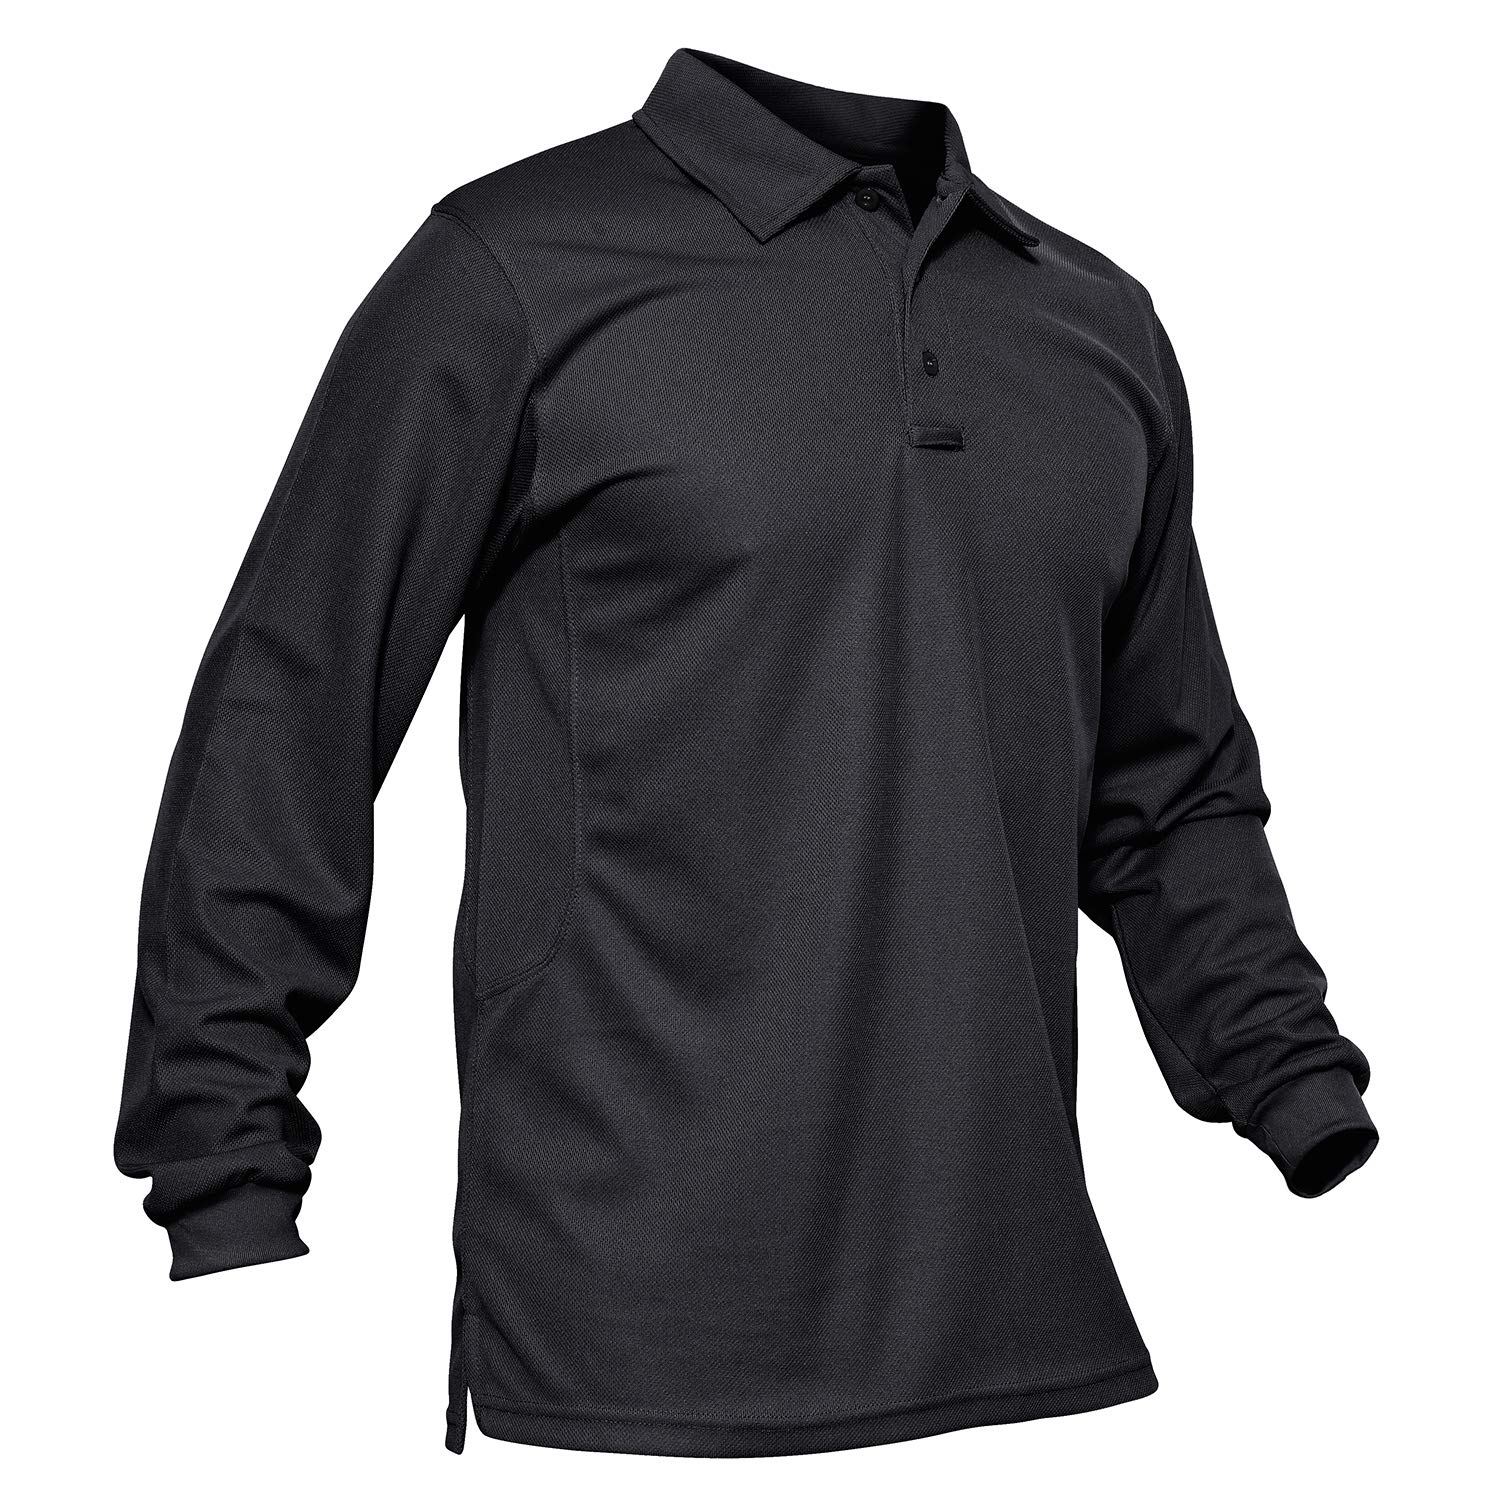 MAGCOMSEN Men's Long Sleeve Polo Shirt Solid Tactical T Shirt Fitted Golf Polo Shirt Black by MAGCOMSEN